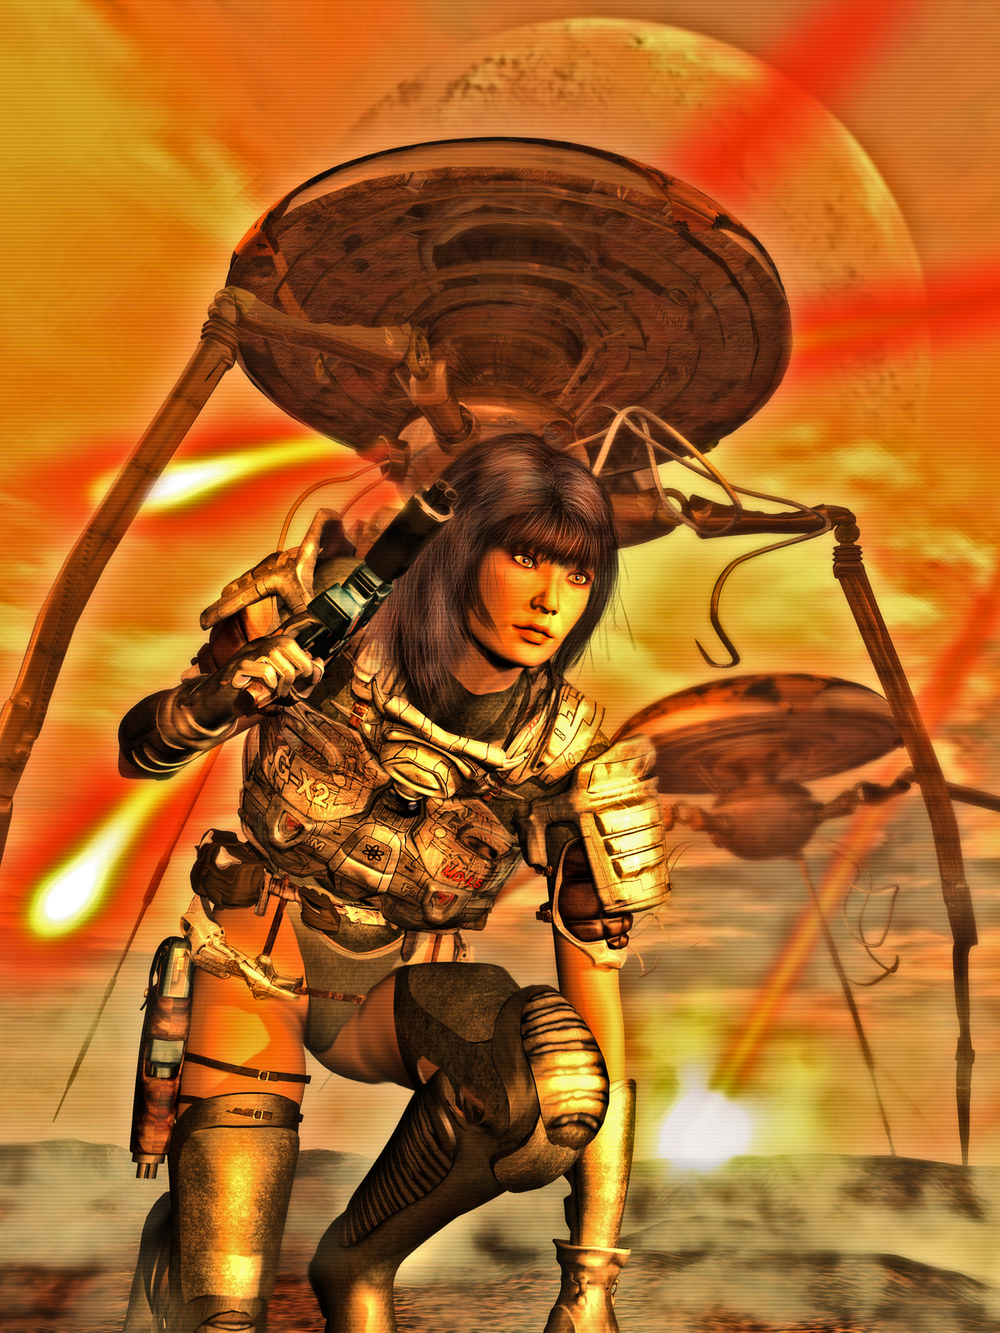 Space Warrior-artwork.jpg